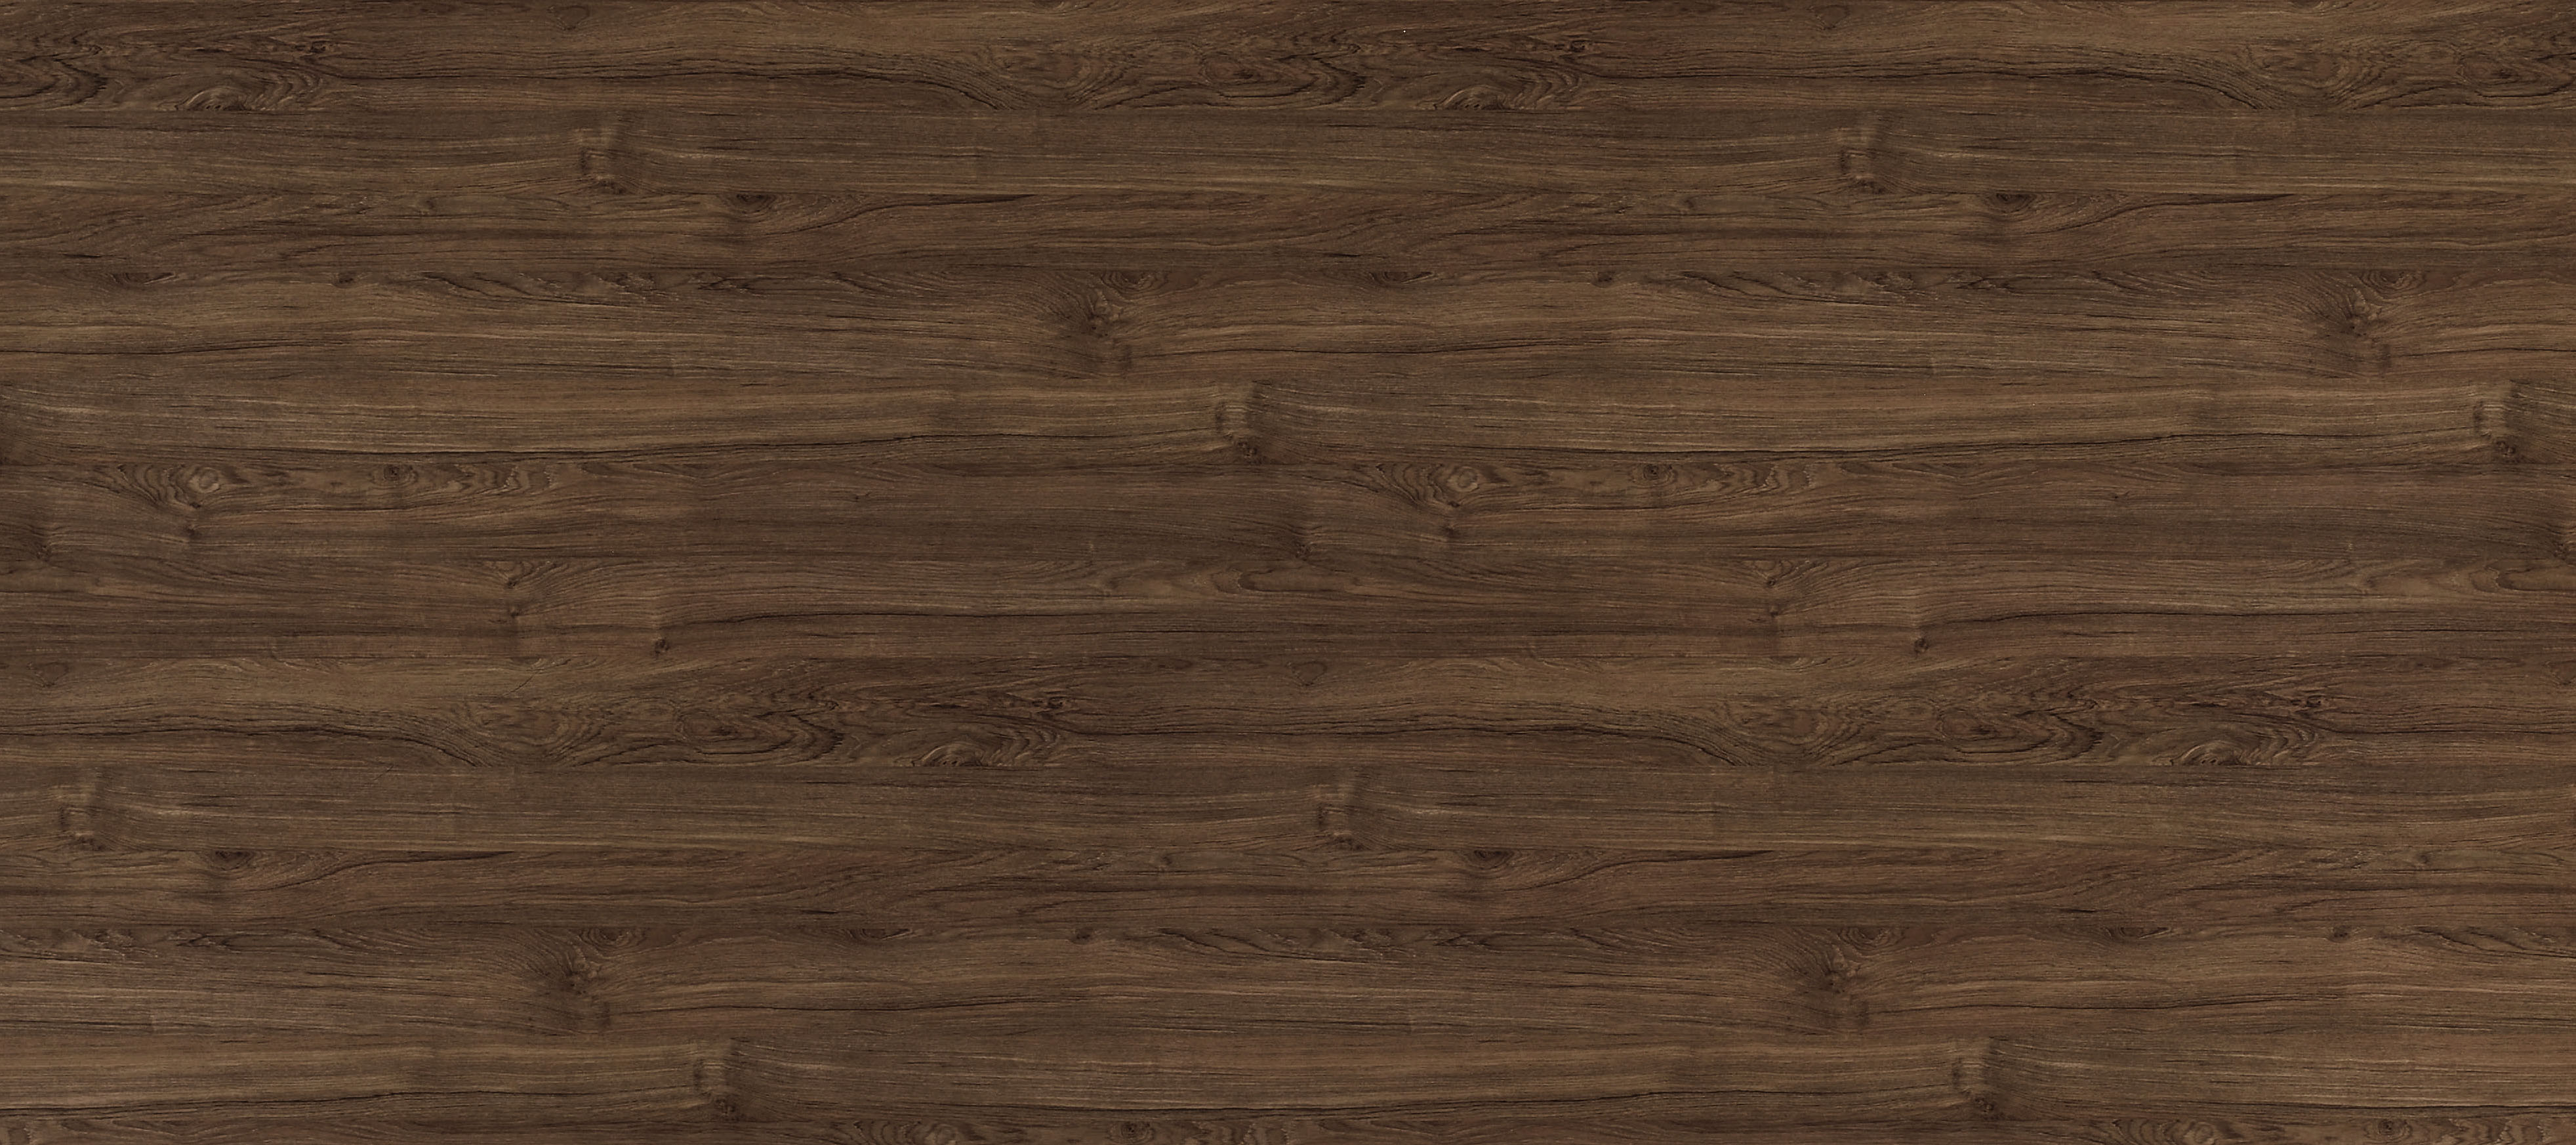 Parquest flooring floors of stone blog parquet fougre un for Texture rovere